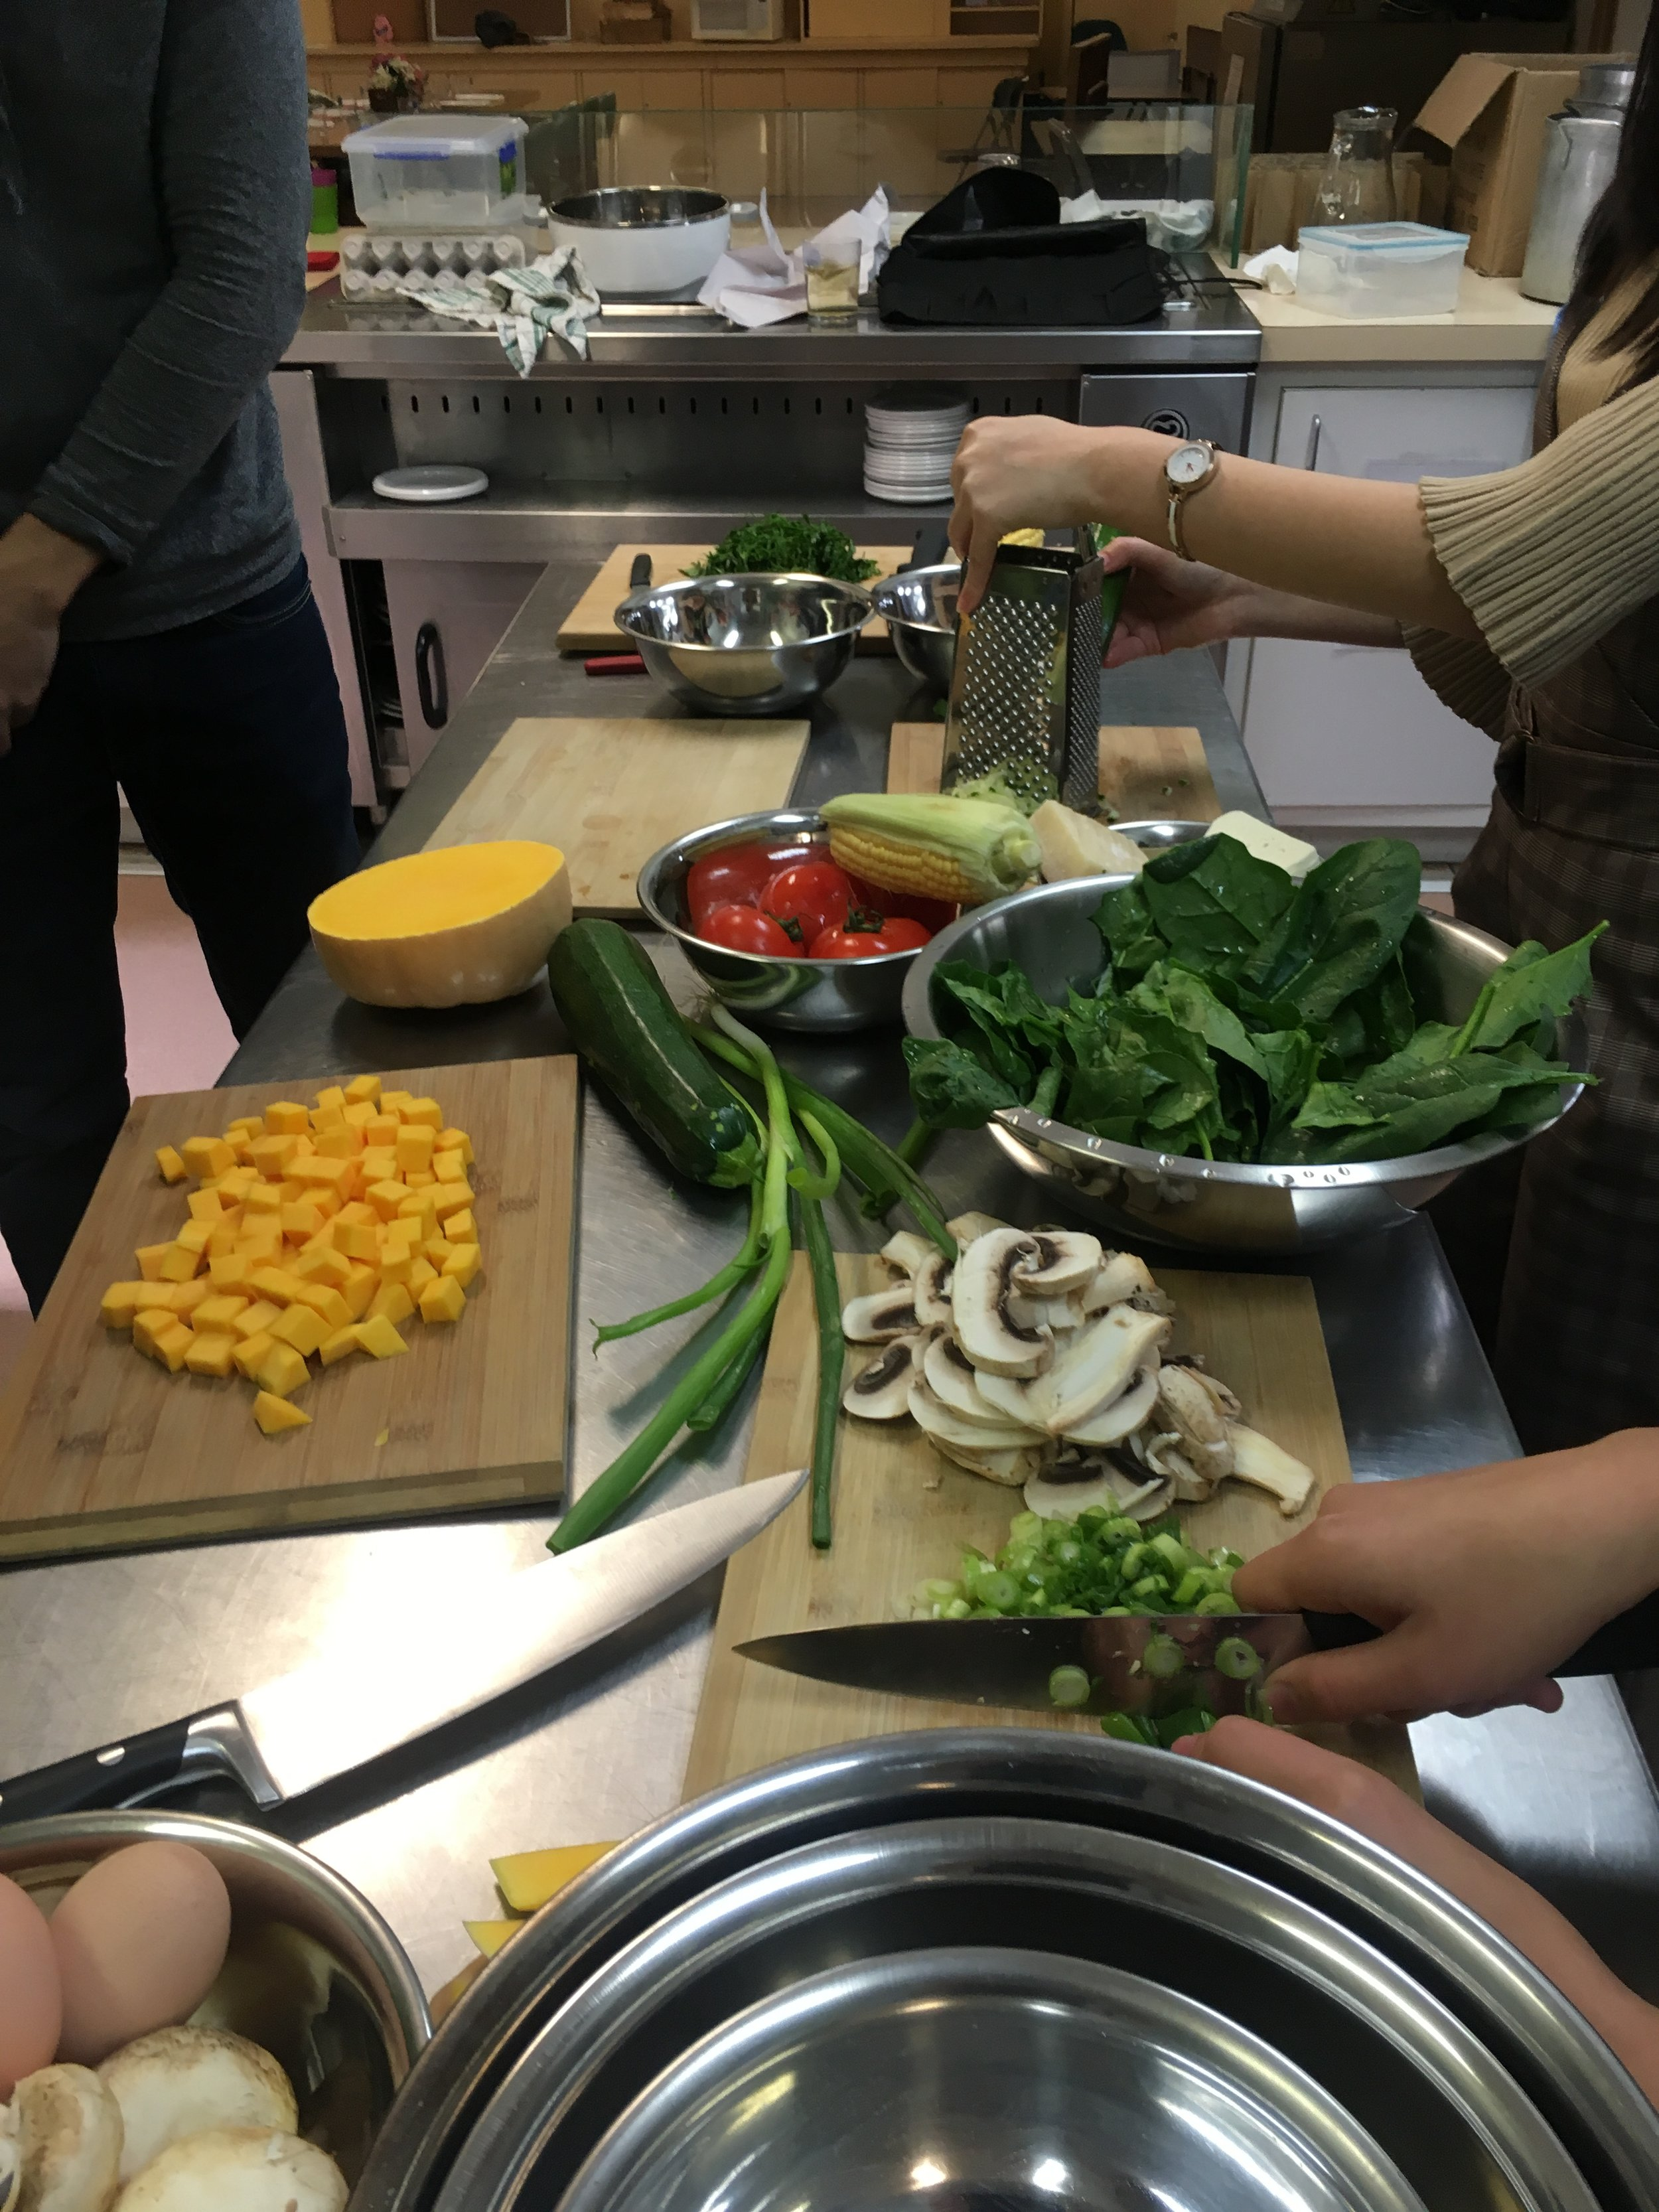 Several chopping boards with the group carefully processing spring onions, mushrooms, zucchini, pumpkin, spinach leaves, fresh corn and tomatoes.